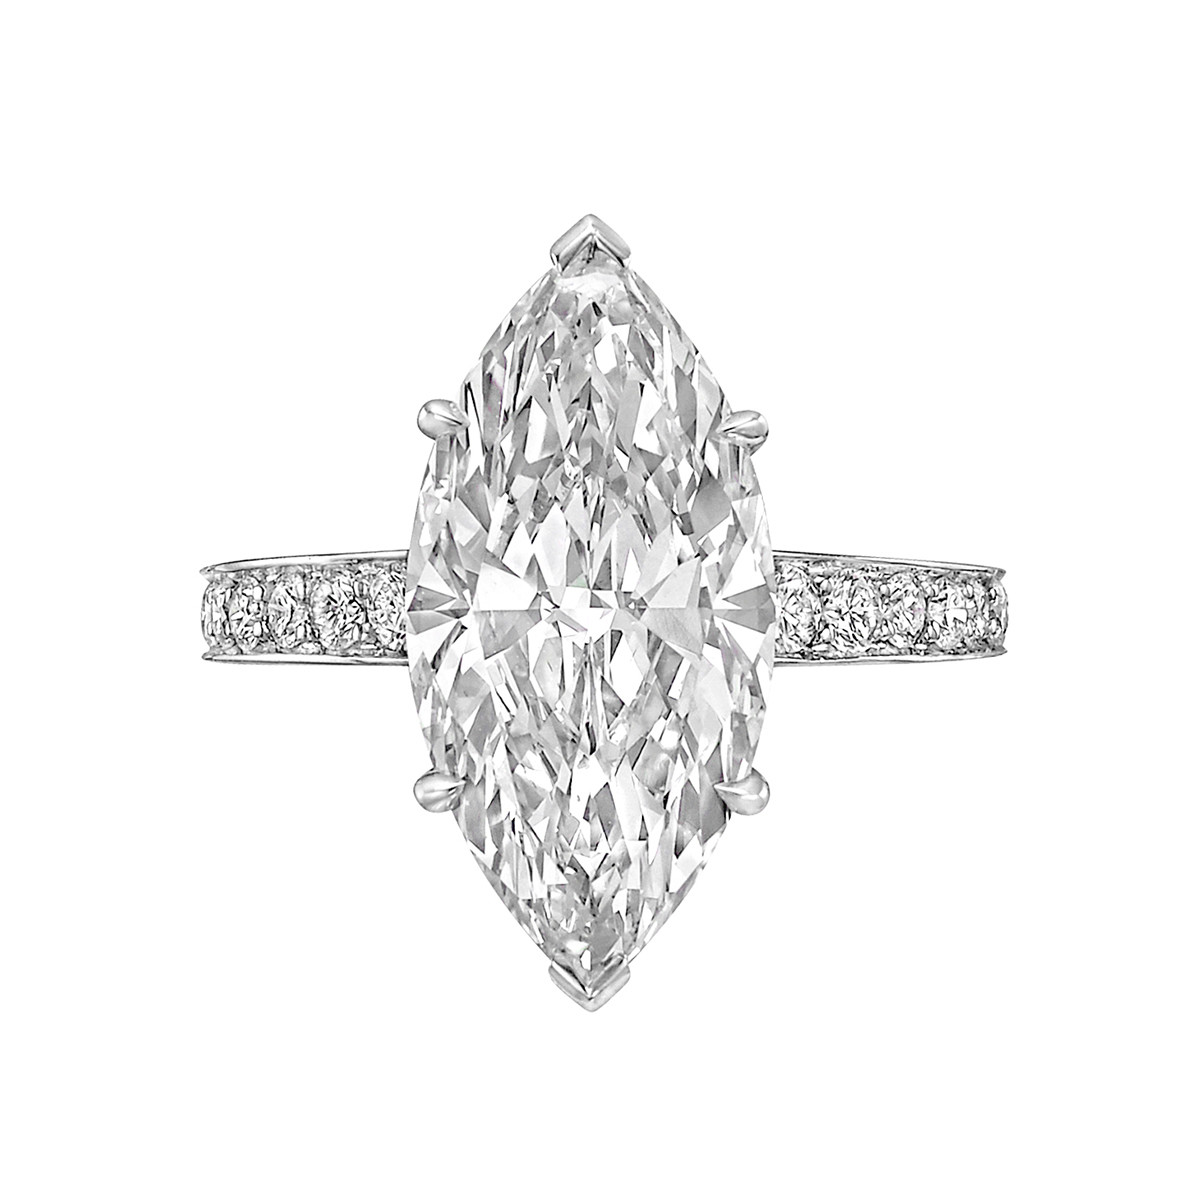 5.06ct Marquise-Cut Diamond Ring (D/VVS1)